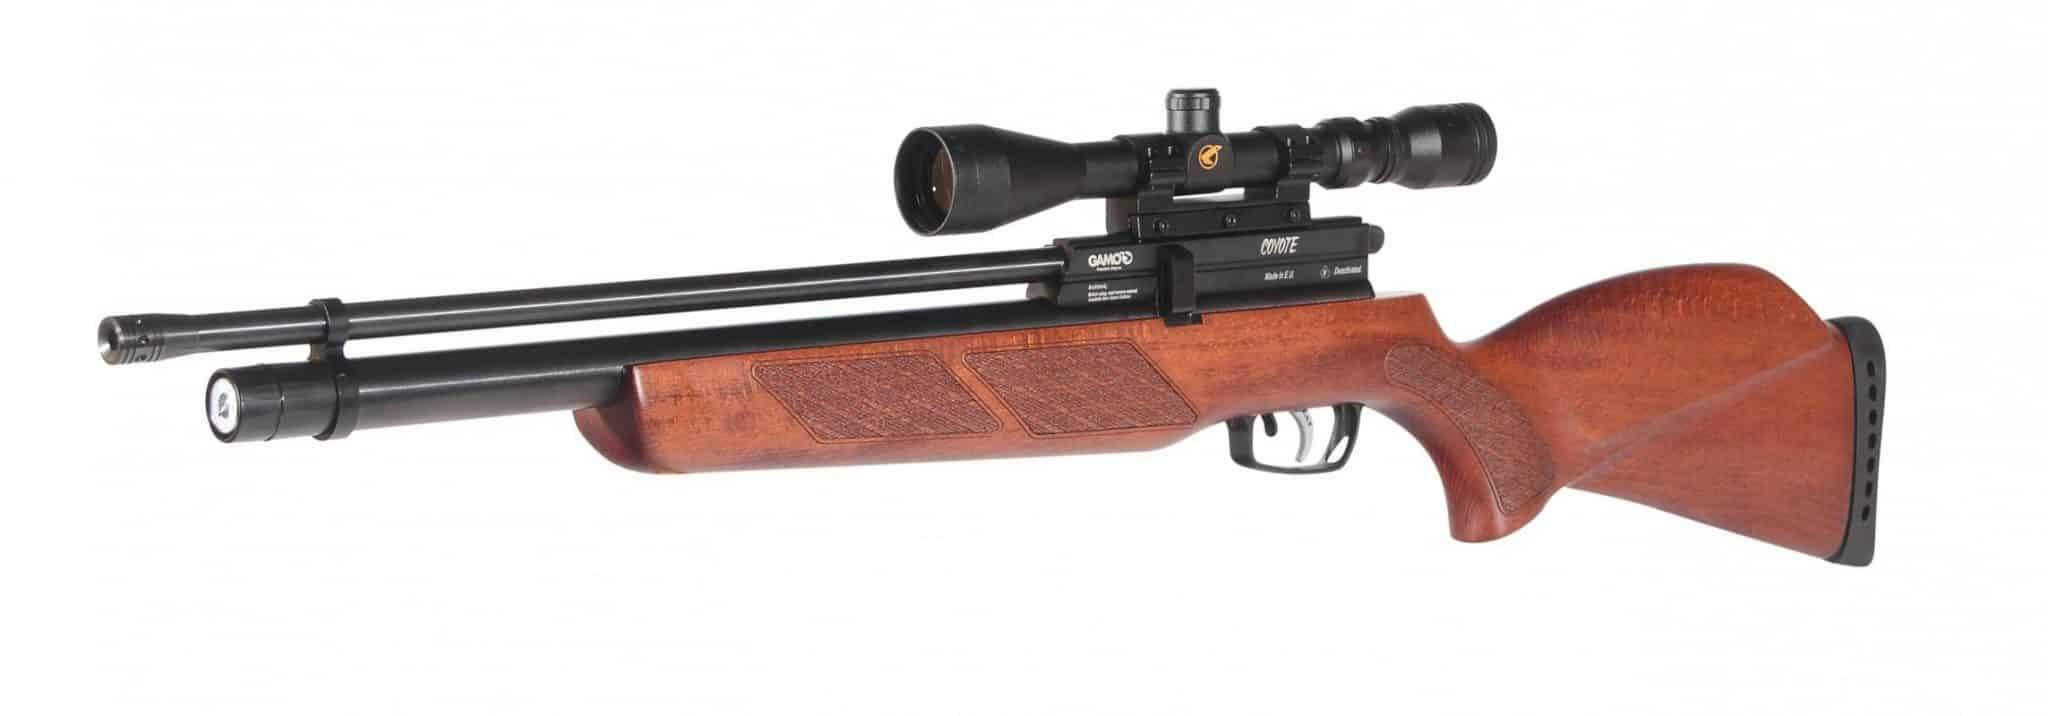 GAMO COYOTE PCP AIR RIFLE (PELLET) 4.5MM | Blades and Triggers